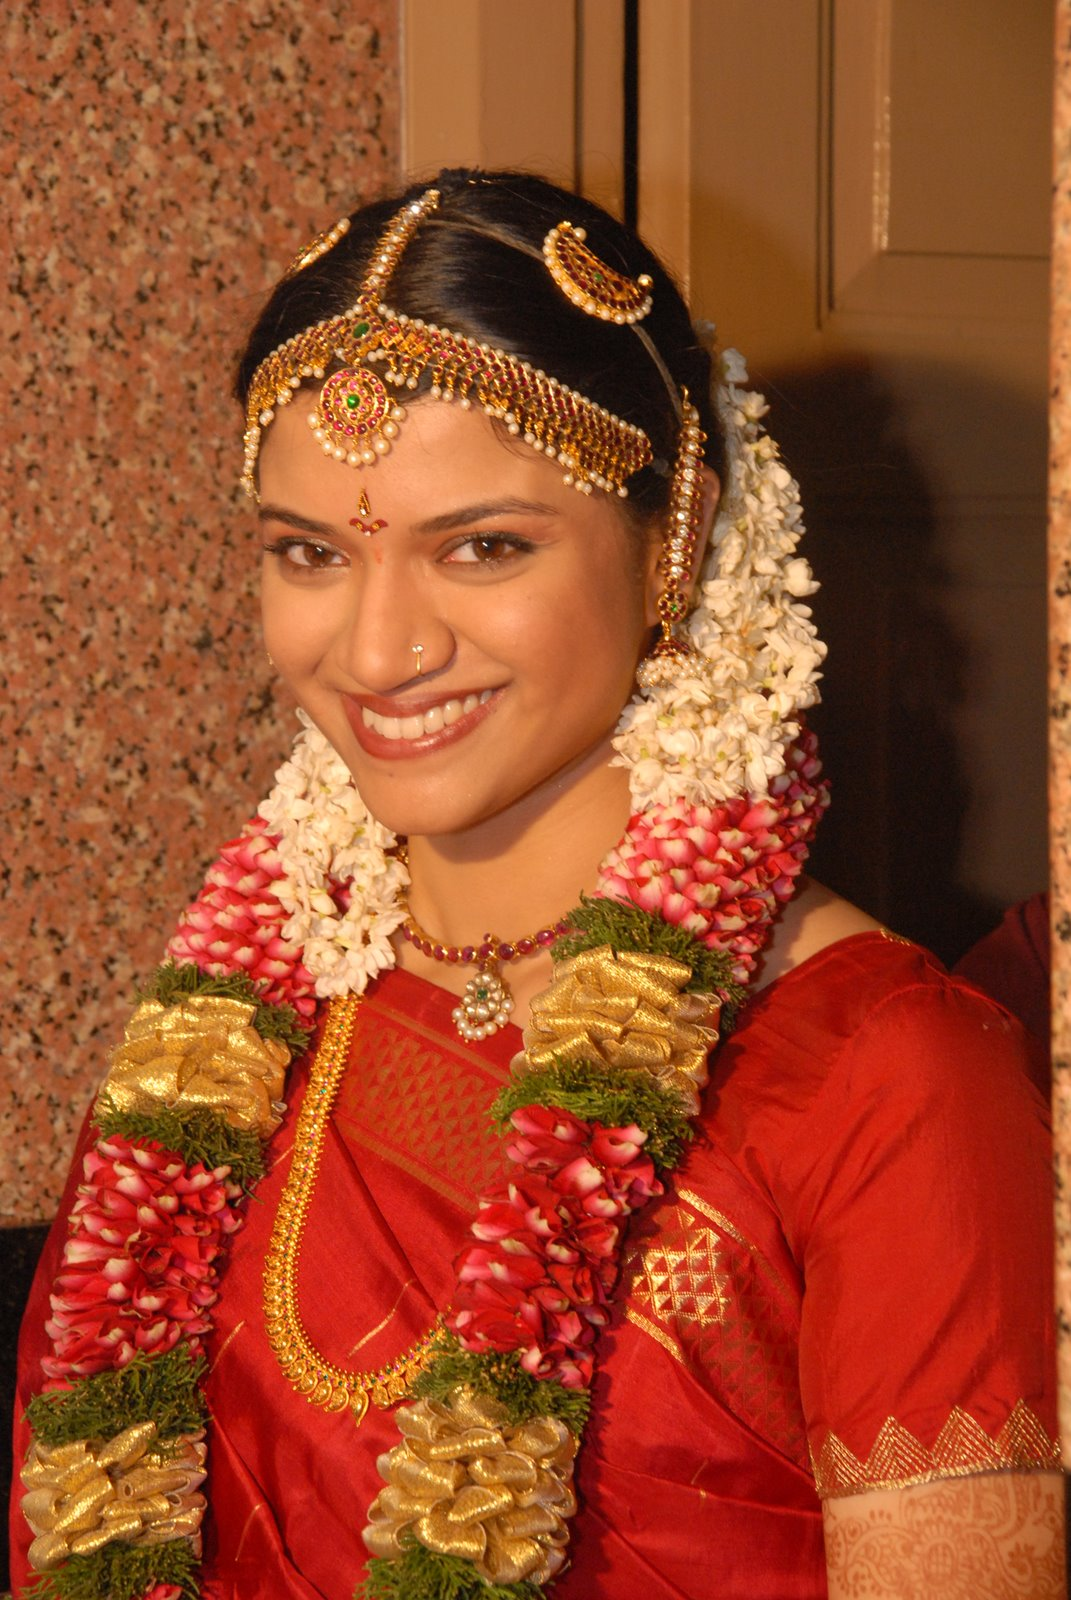 South Indian Wedding Dress Wedding Pictures